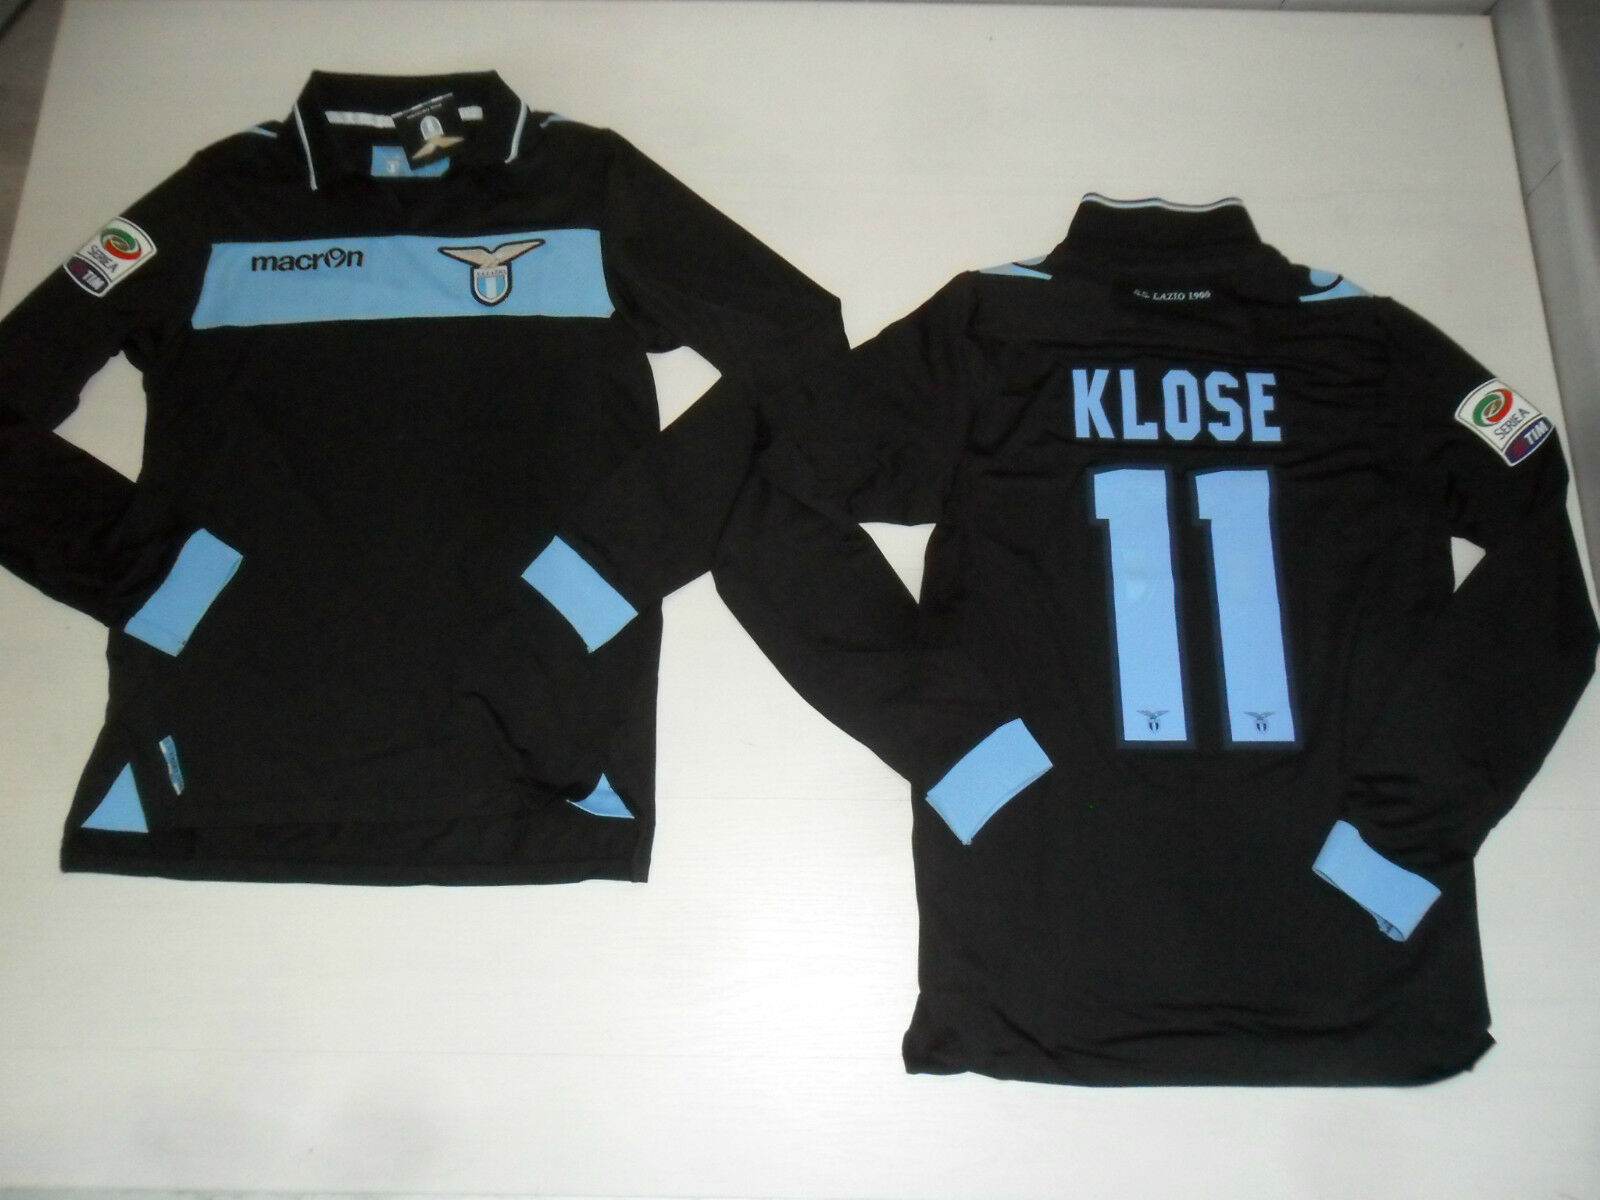 12-13 MAGLIETTA LAZIO PREPARATA KLOSE ISSUE SHIRT MANICA LUNGA LONG SLEEVE  30